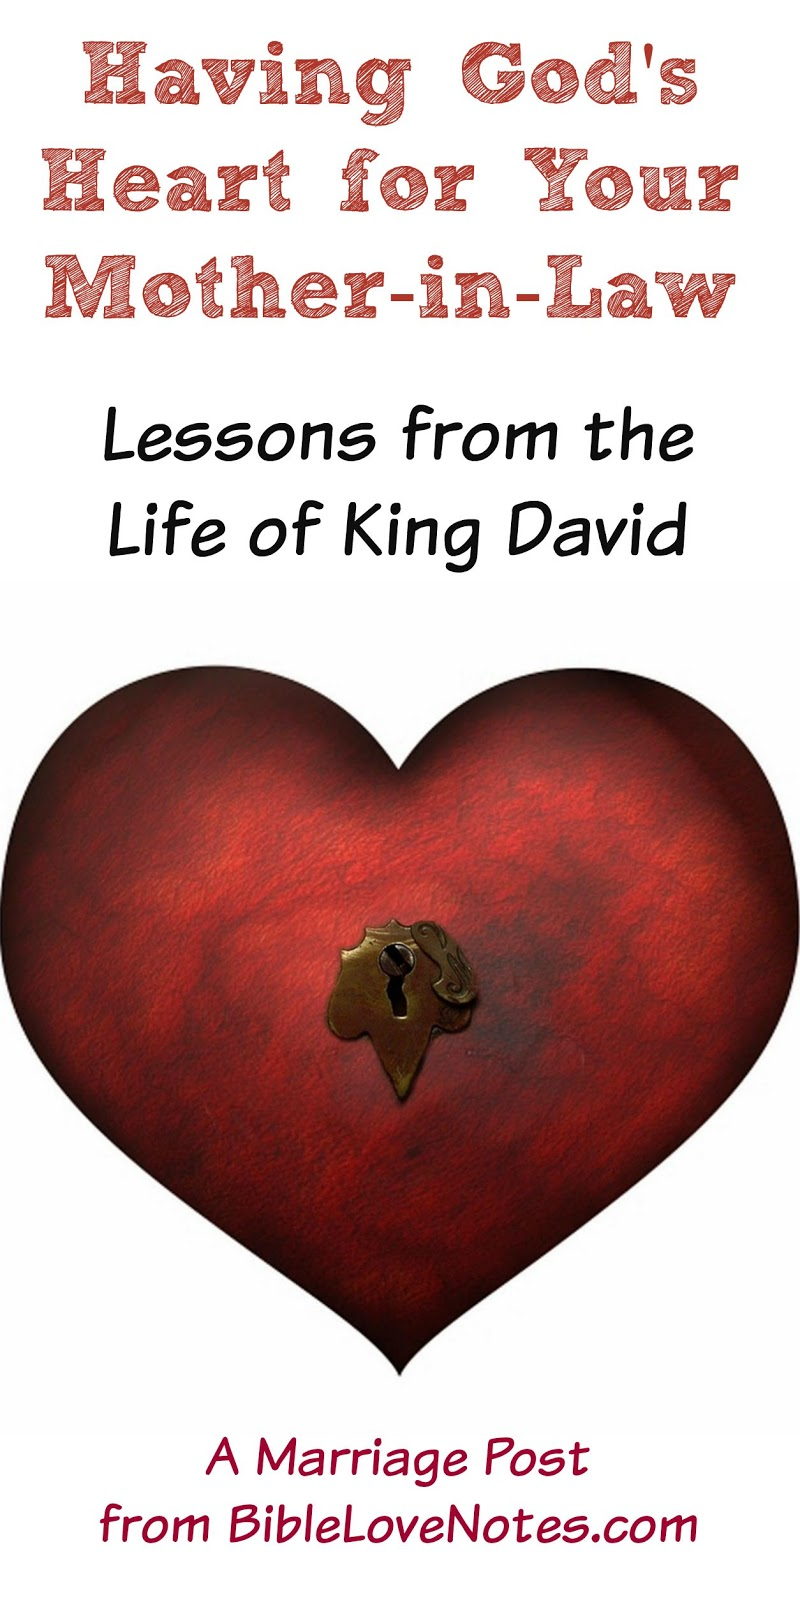 David dealt with King Saul respectfully David and Saul teach us about mother in